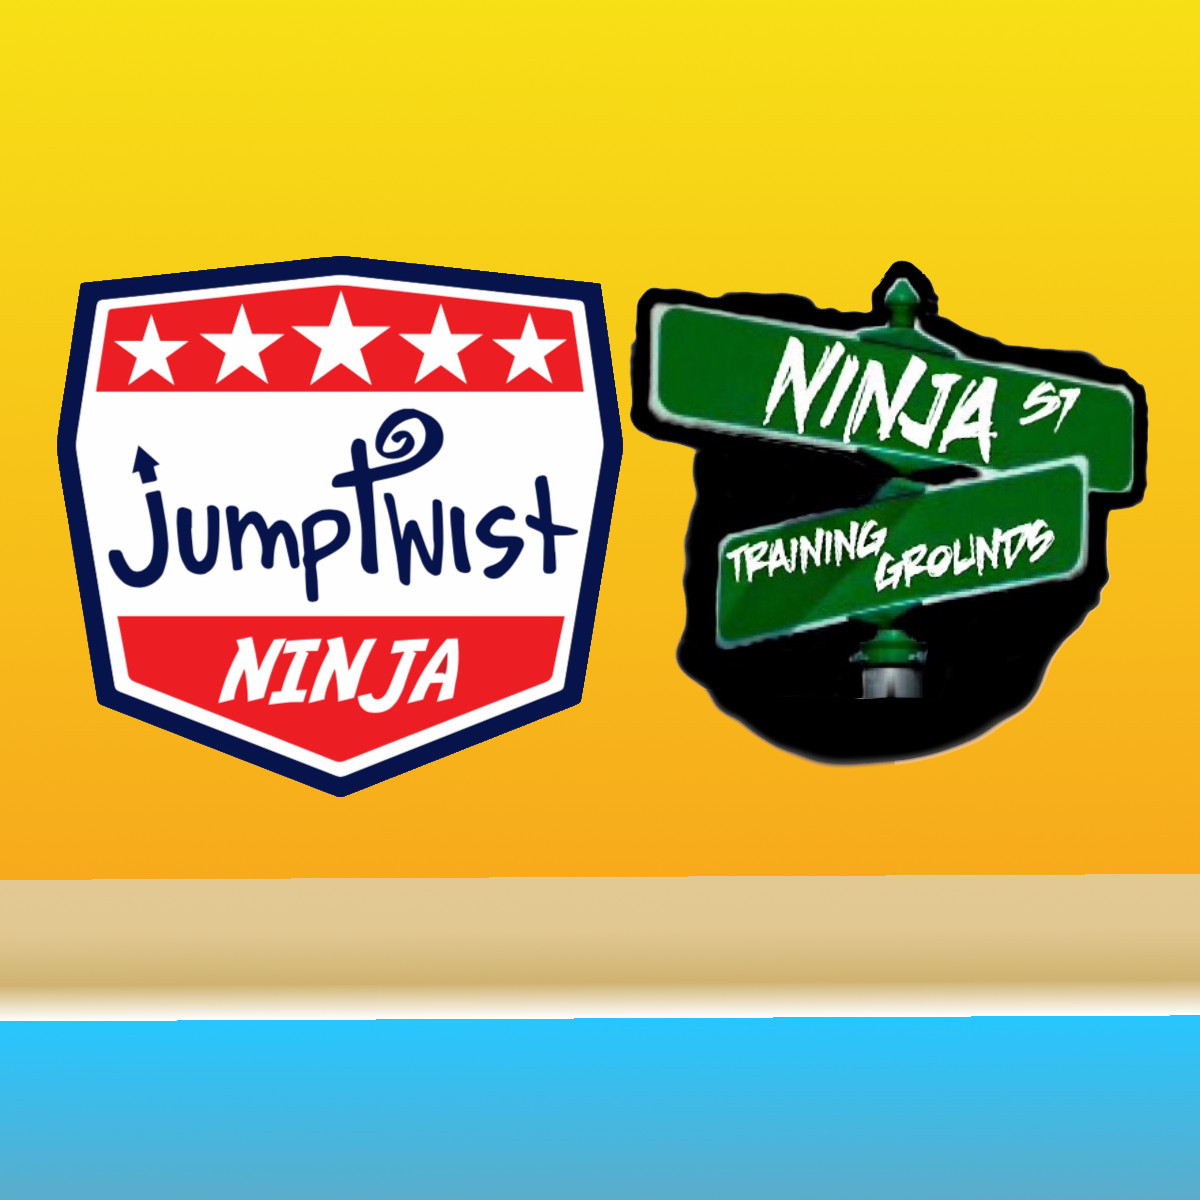 How to qualify for the Finals - In order to qualify for the finals, you must place in the top 20% at any Florida Ninja League competition. For a full list of upcoming competitions, click HERE!